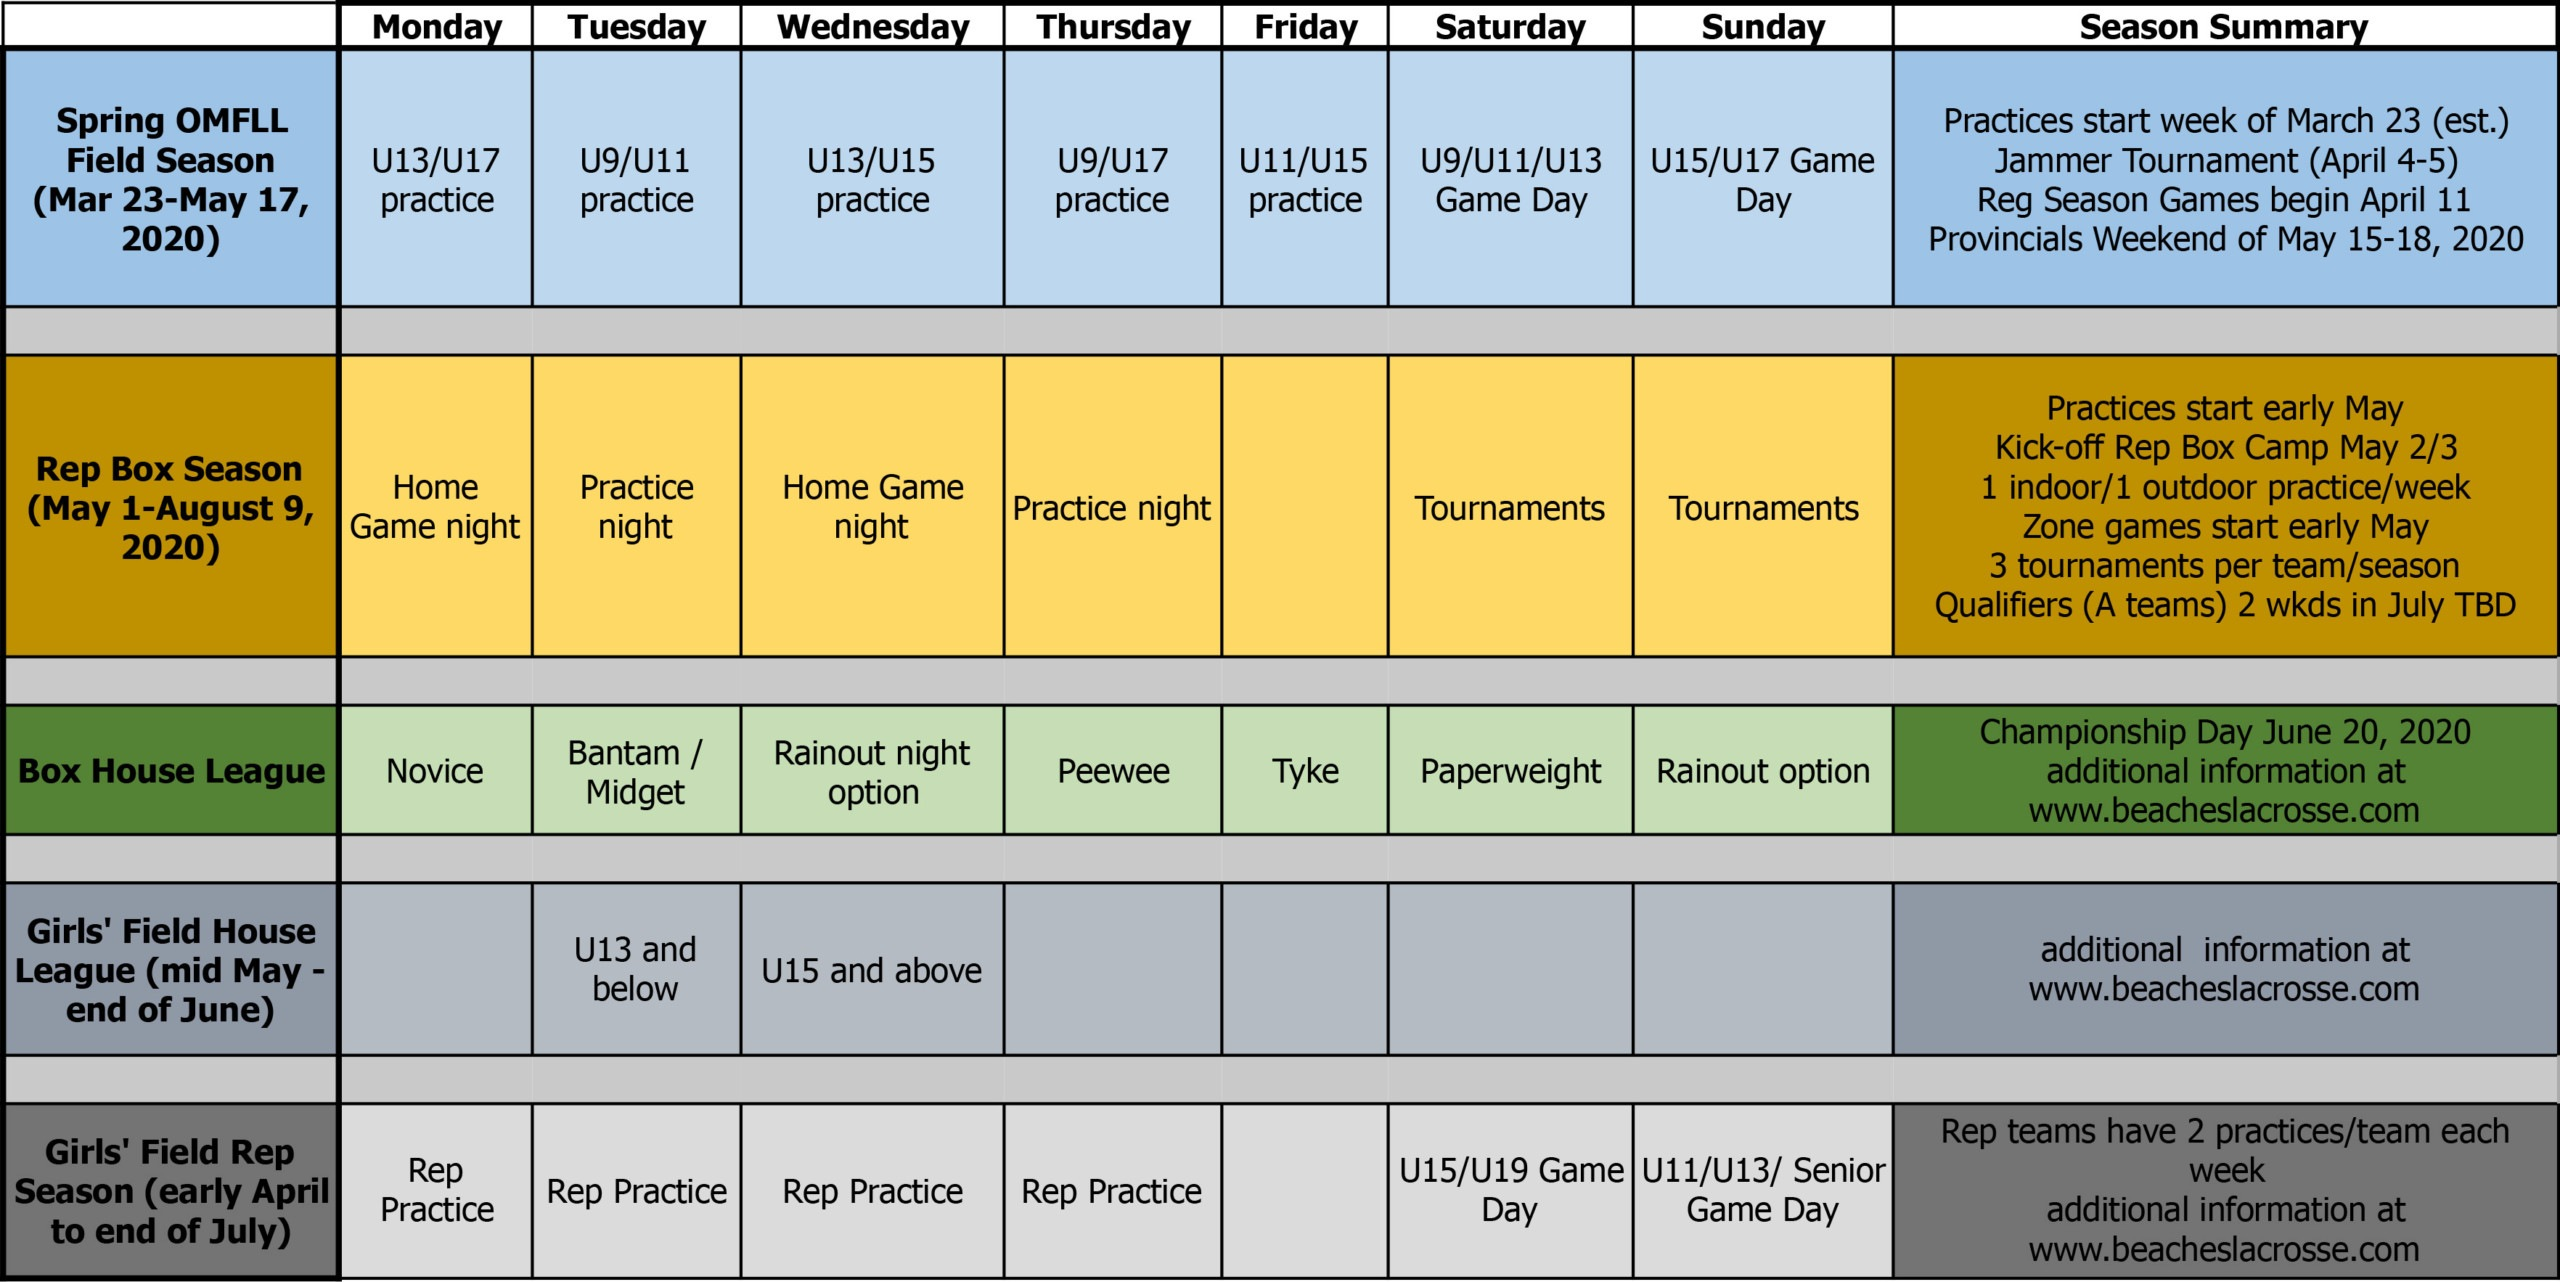 Master Schedule for Beaches Lacrosse House League